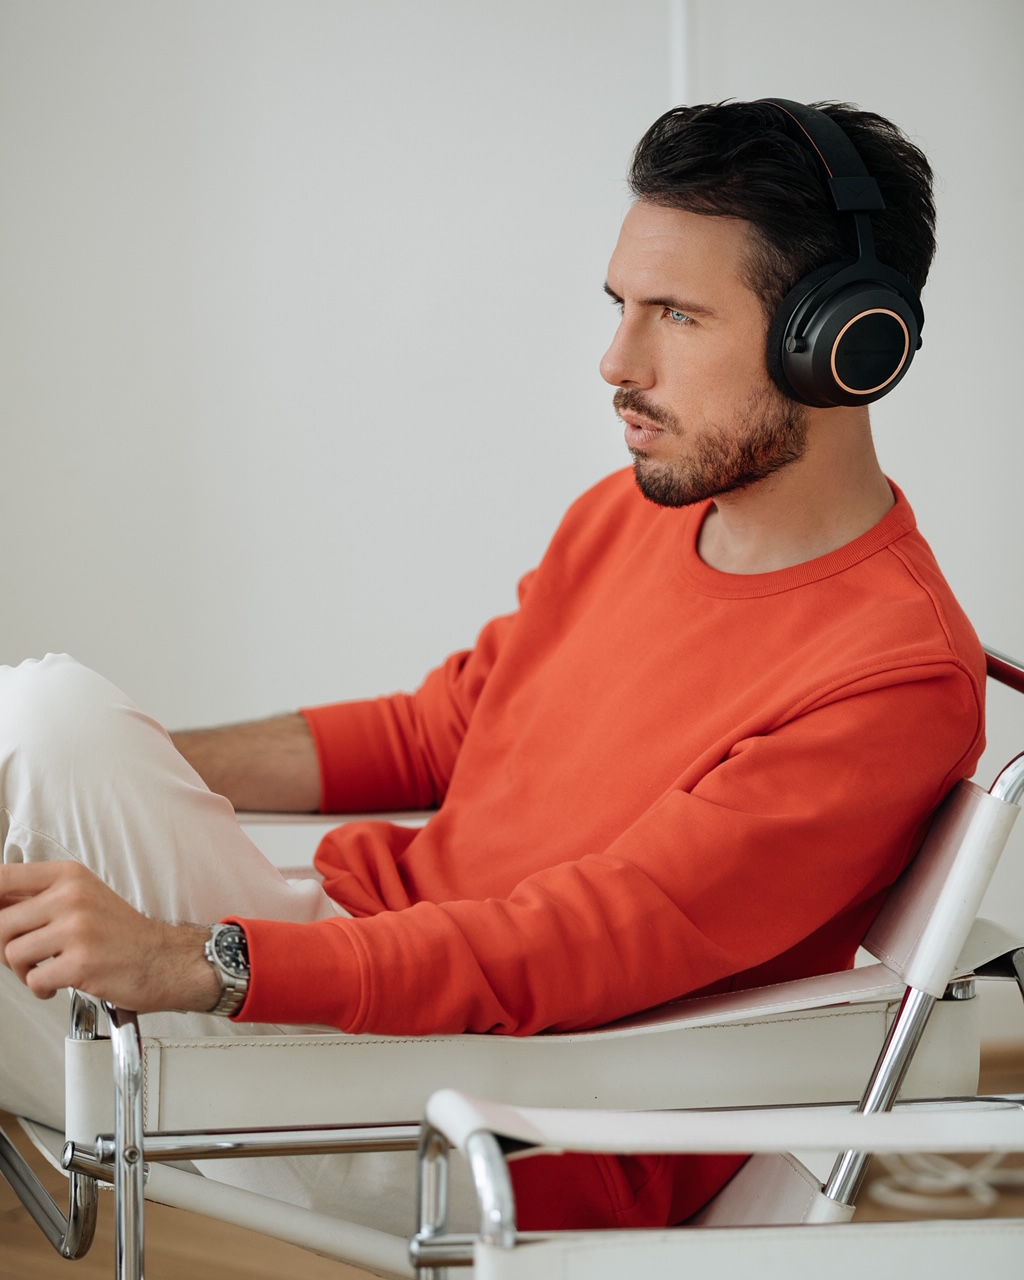 Amiron WIreless Copper beyerdynamic Sebastian Schmidt ©Rose Time